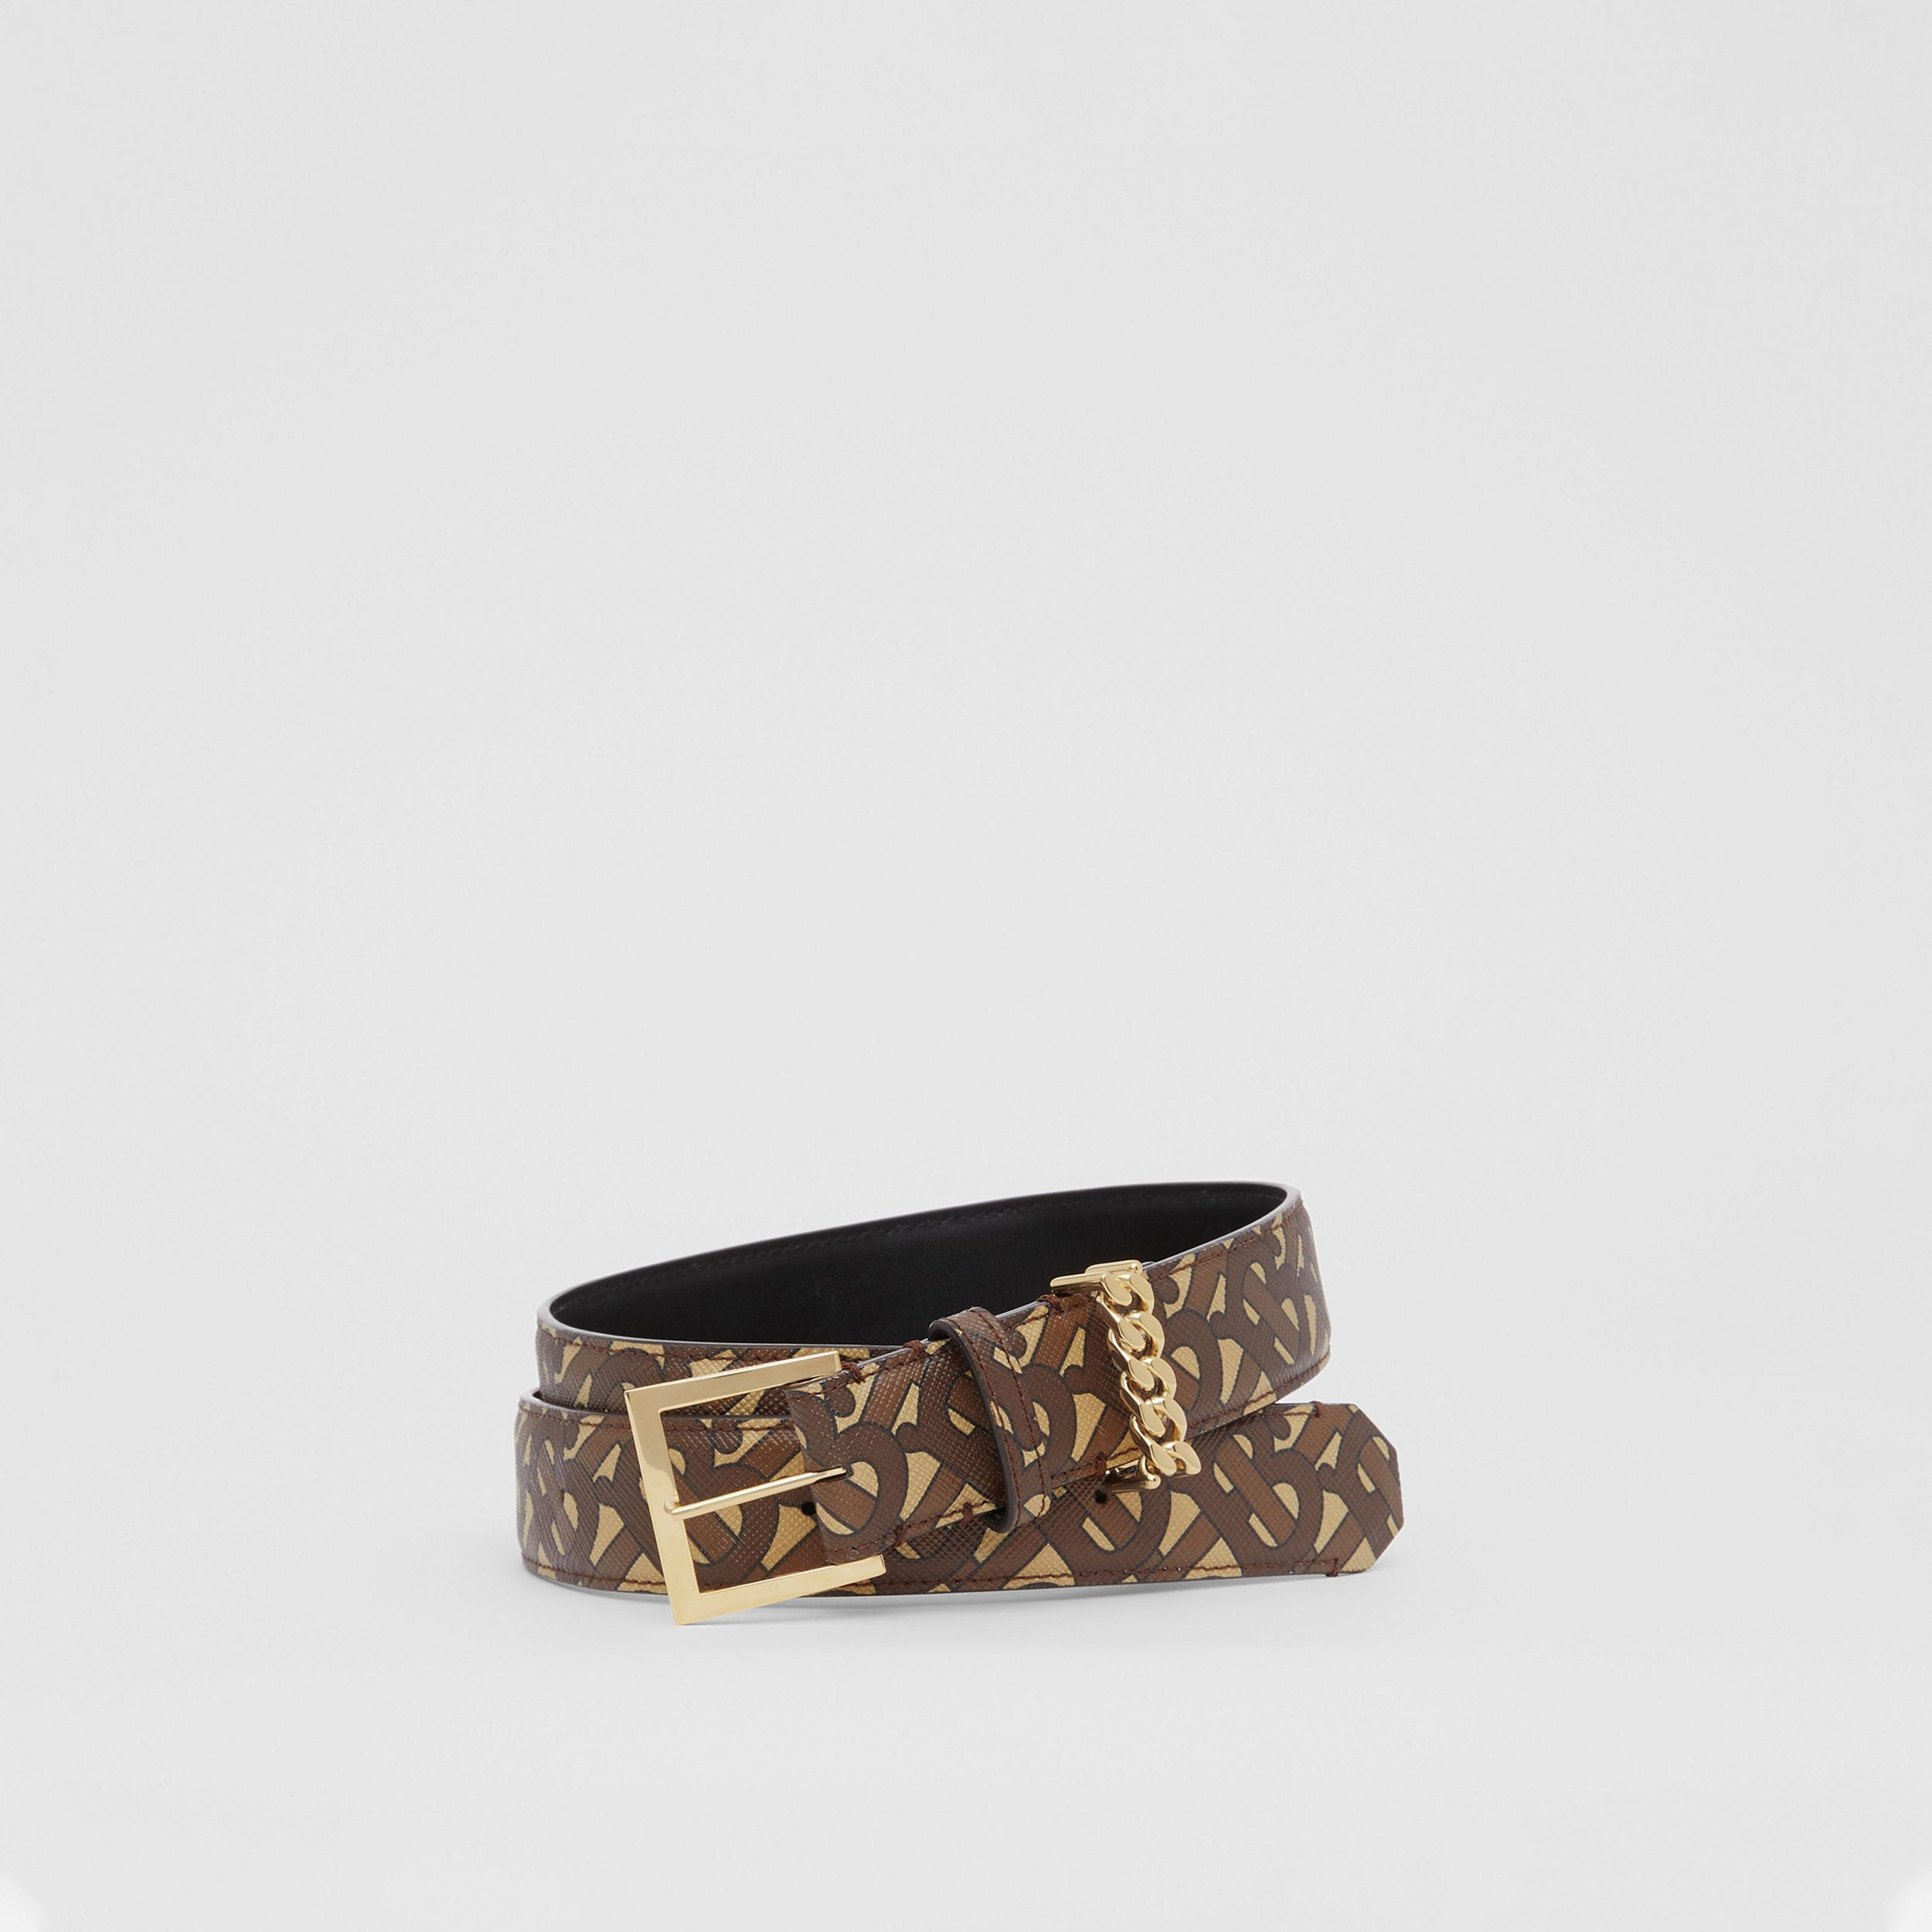 Chain Detail Monogram Print E-canvas Belt in Bridle Brown | Burberry - 1